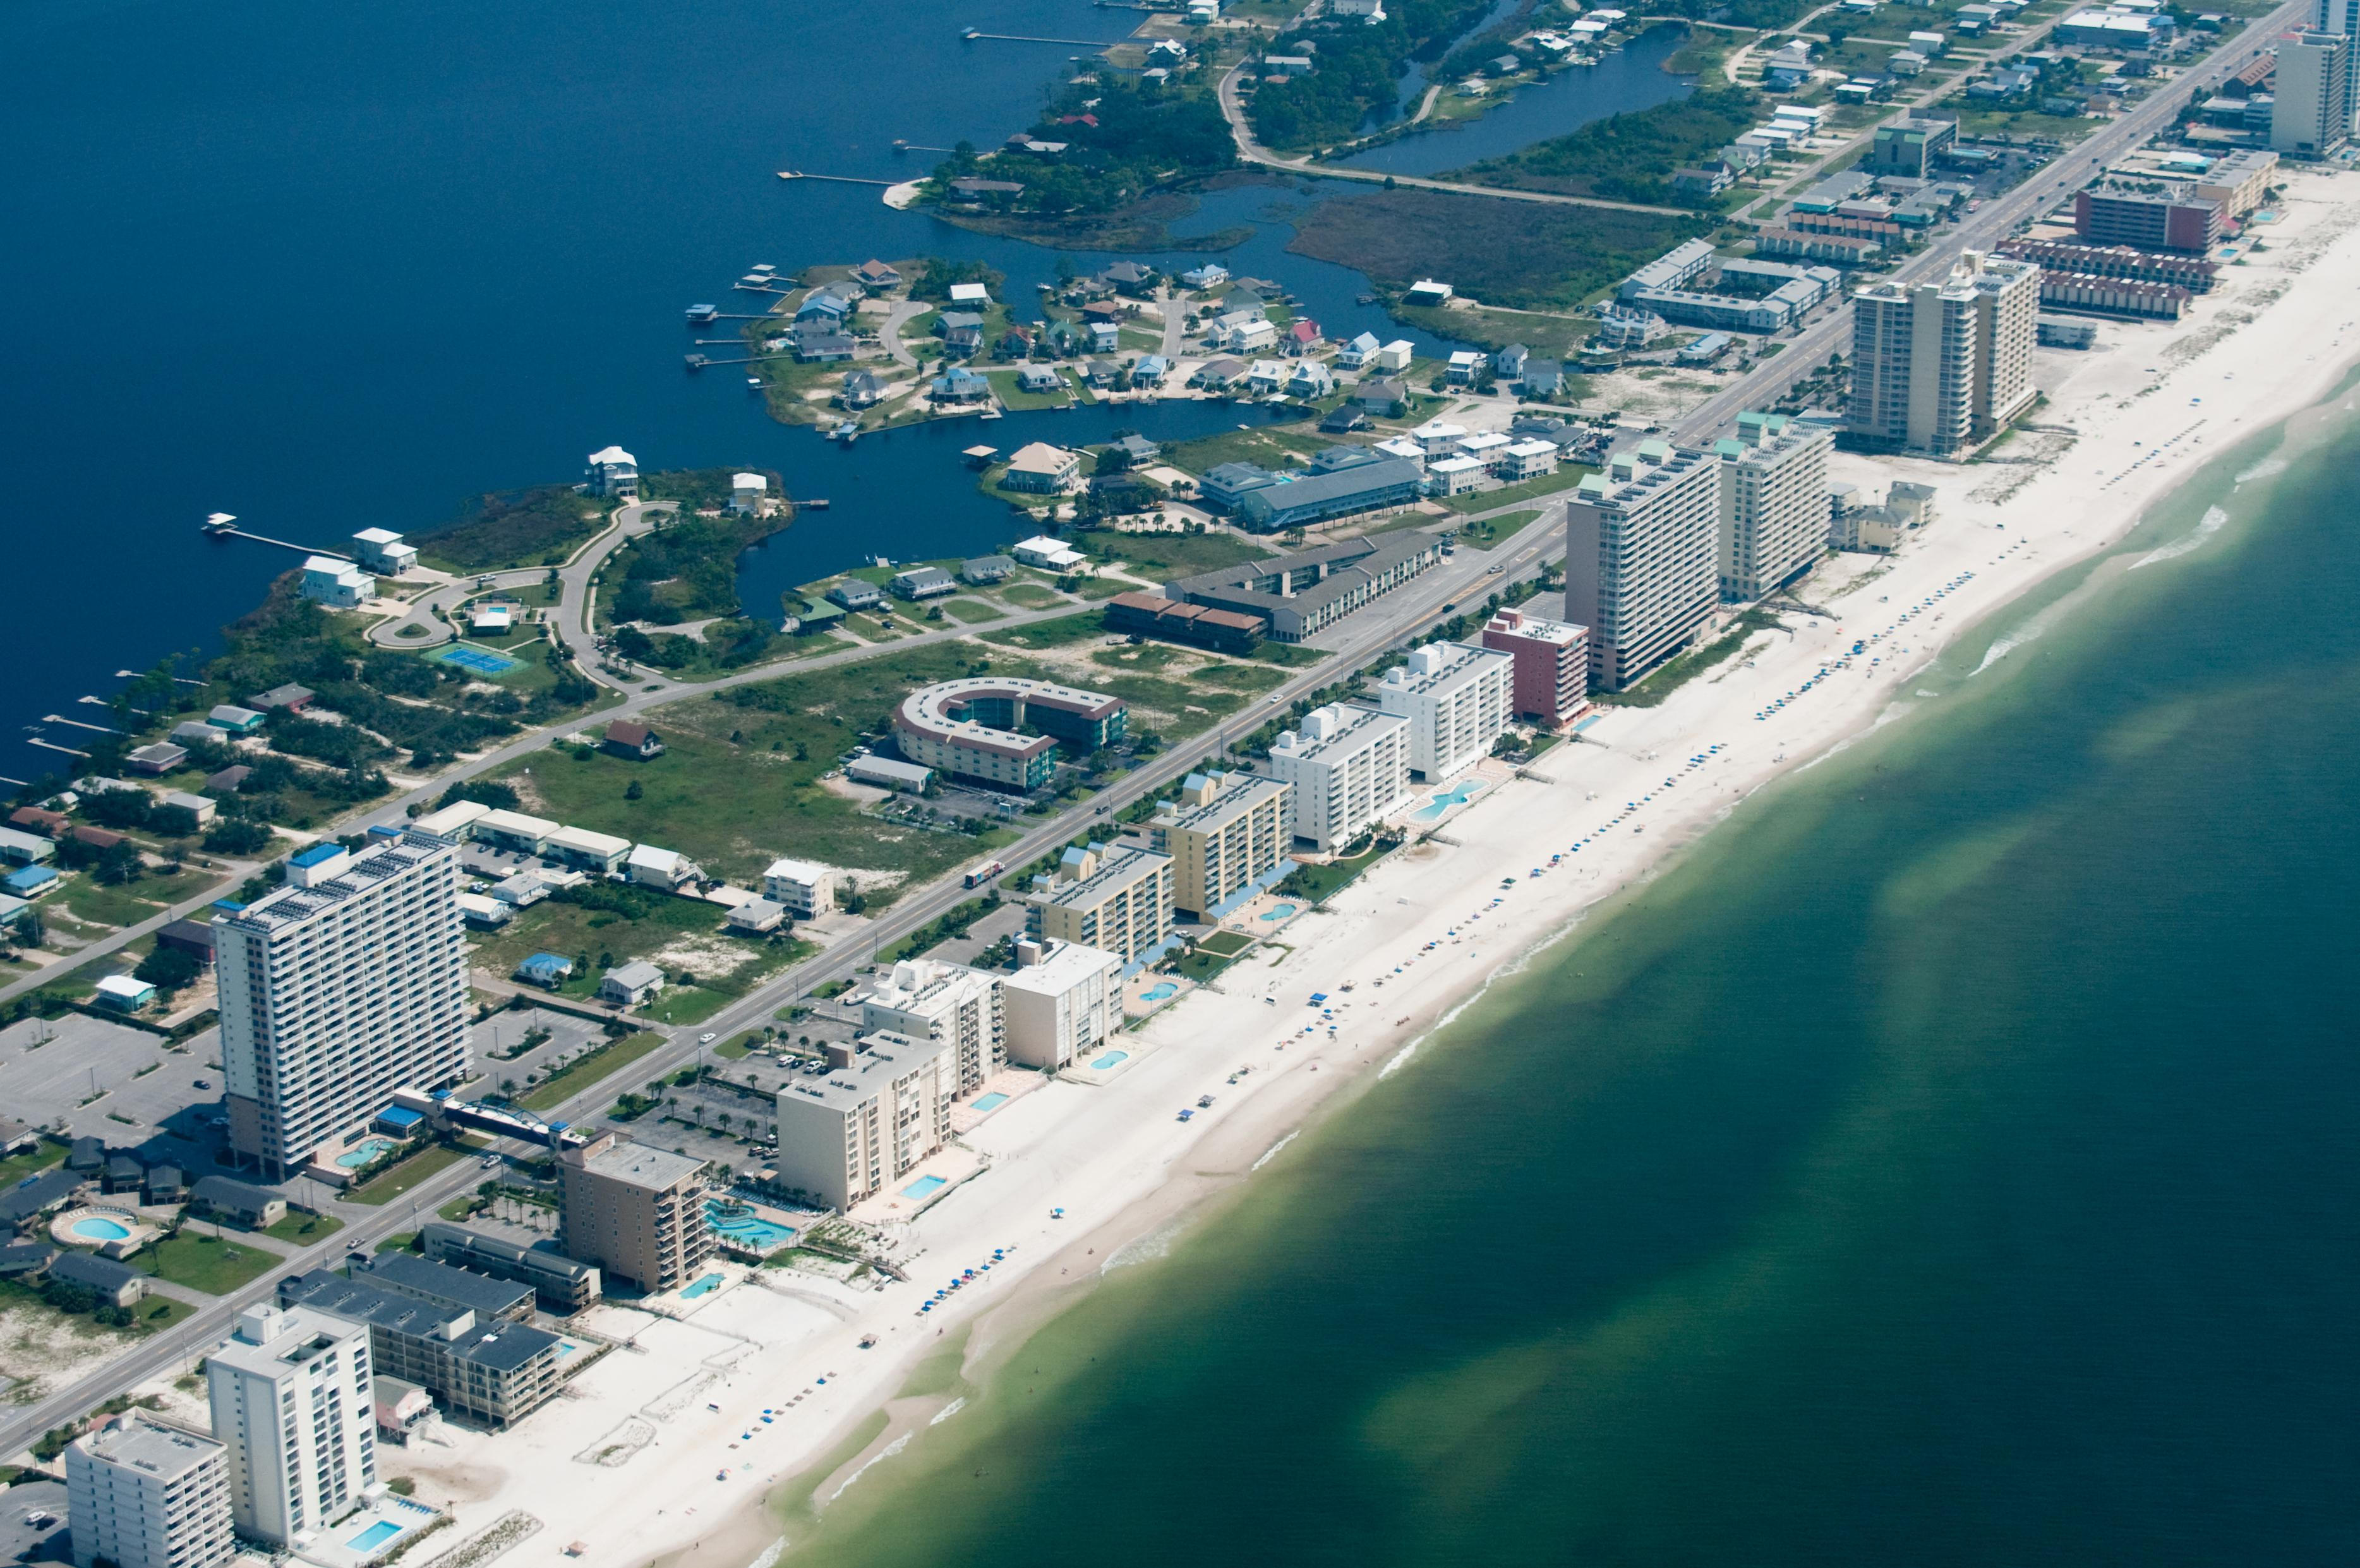 2 Wake Up To A Waterfront View Istock 182925200 Jpg At Gulf Ss And Orange Beach